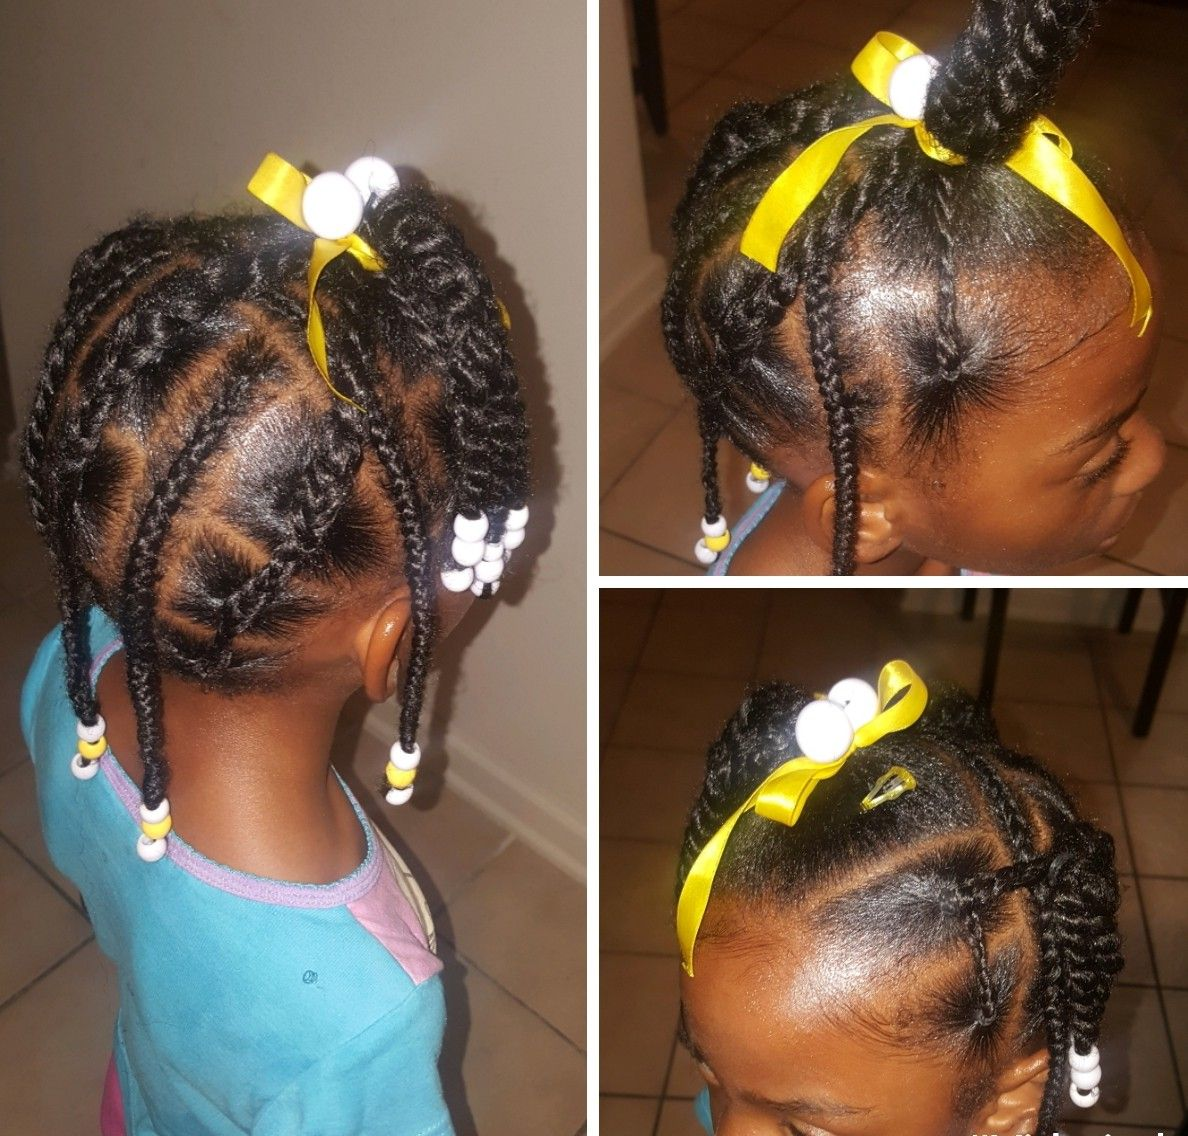 Simple Hair Styles For Little Black Girls Braids Beads And Rubber Bands In Curly And Thick Hair Easy Little Girl Hairstyles Hair Styles Kids Hairstyles